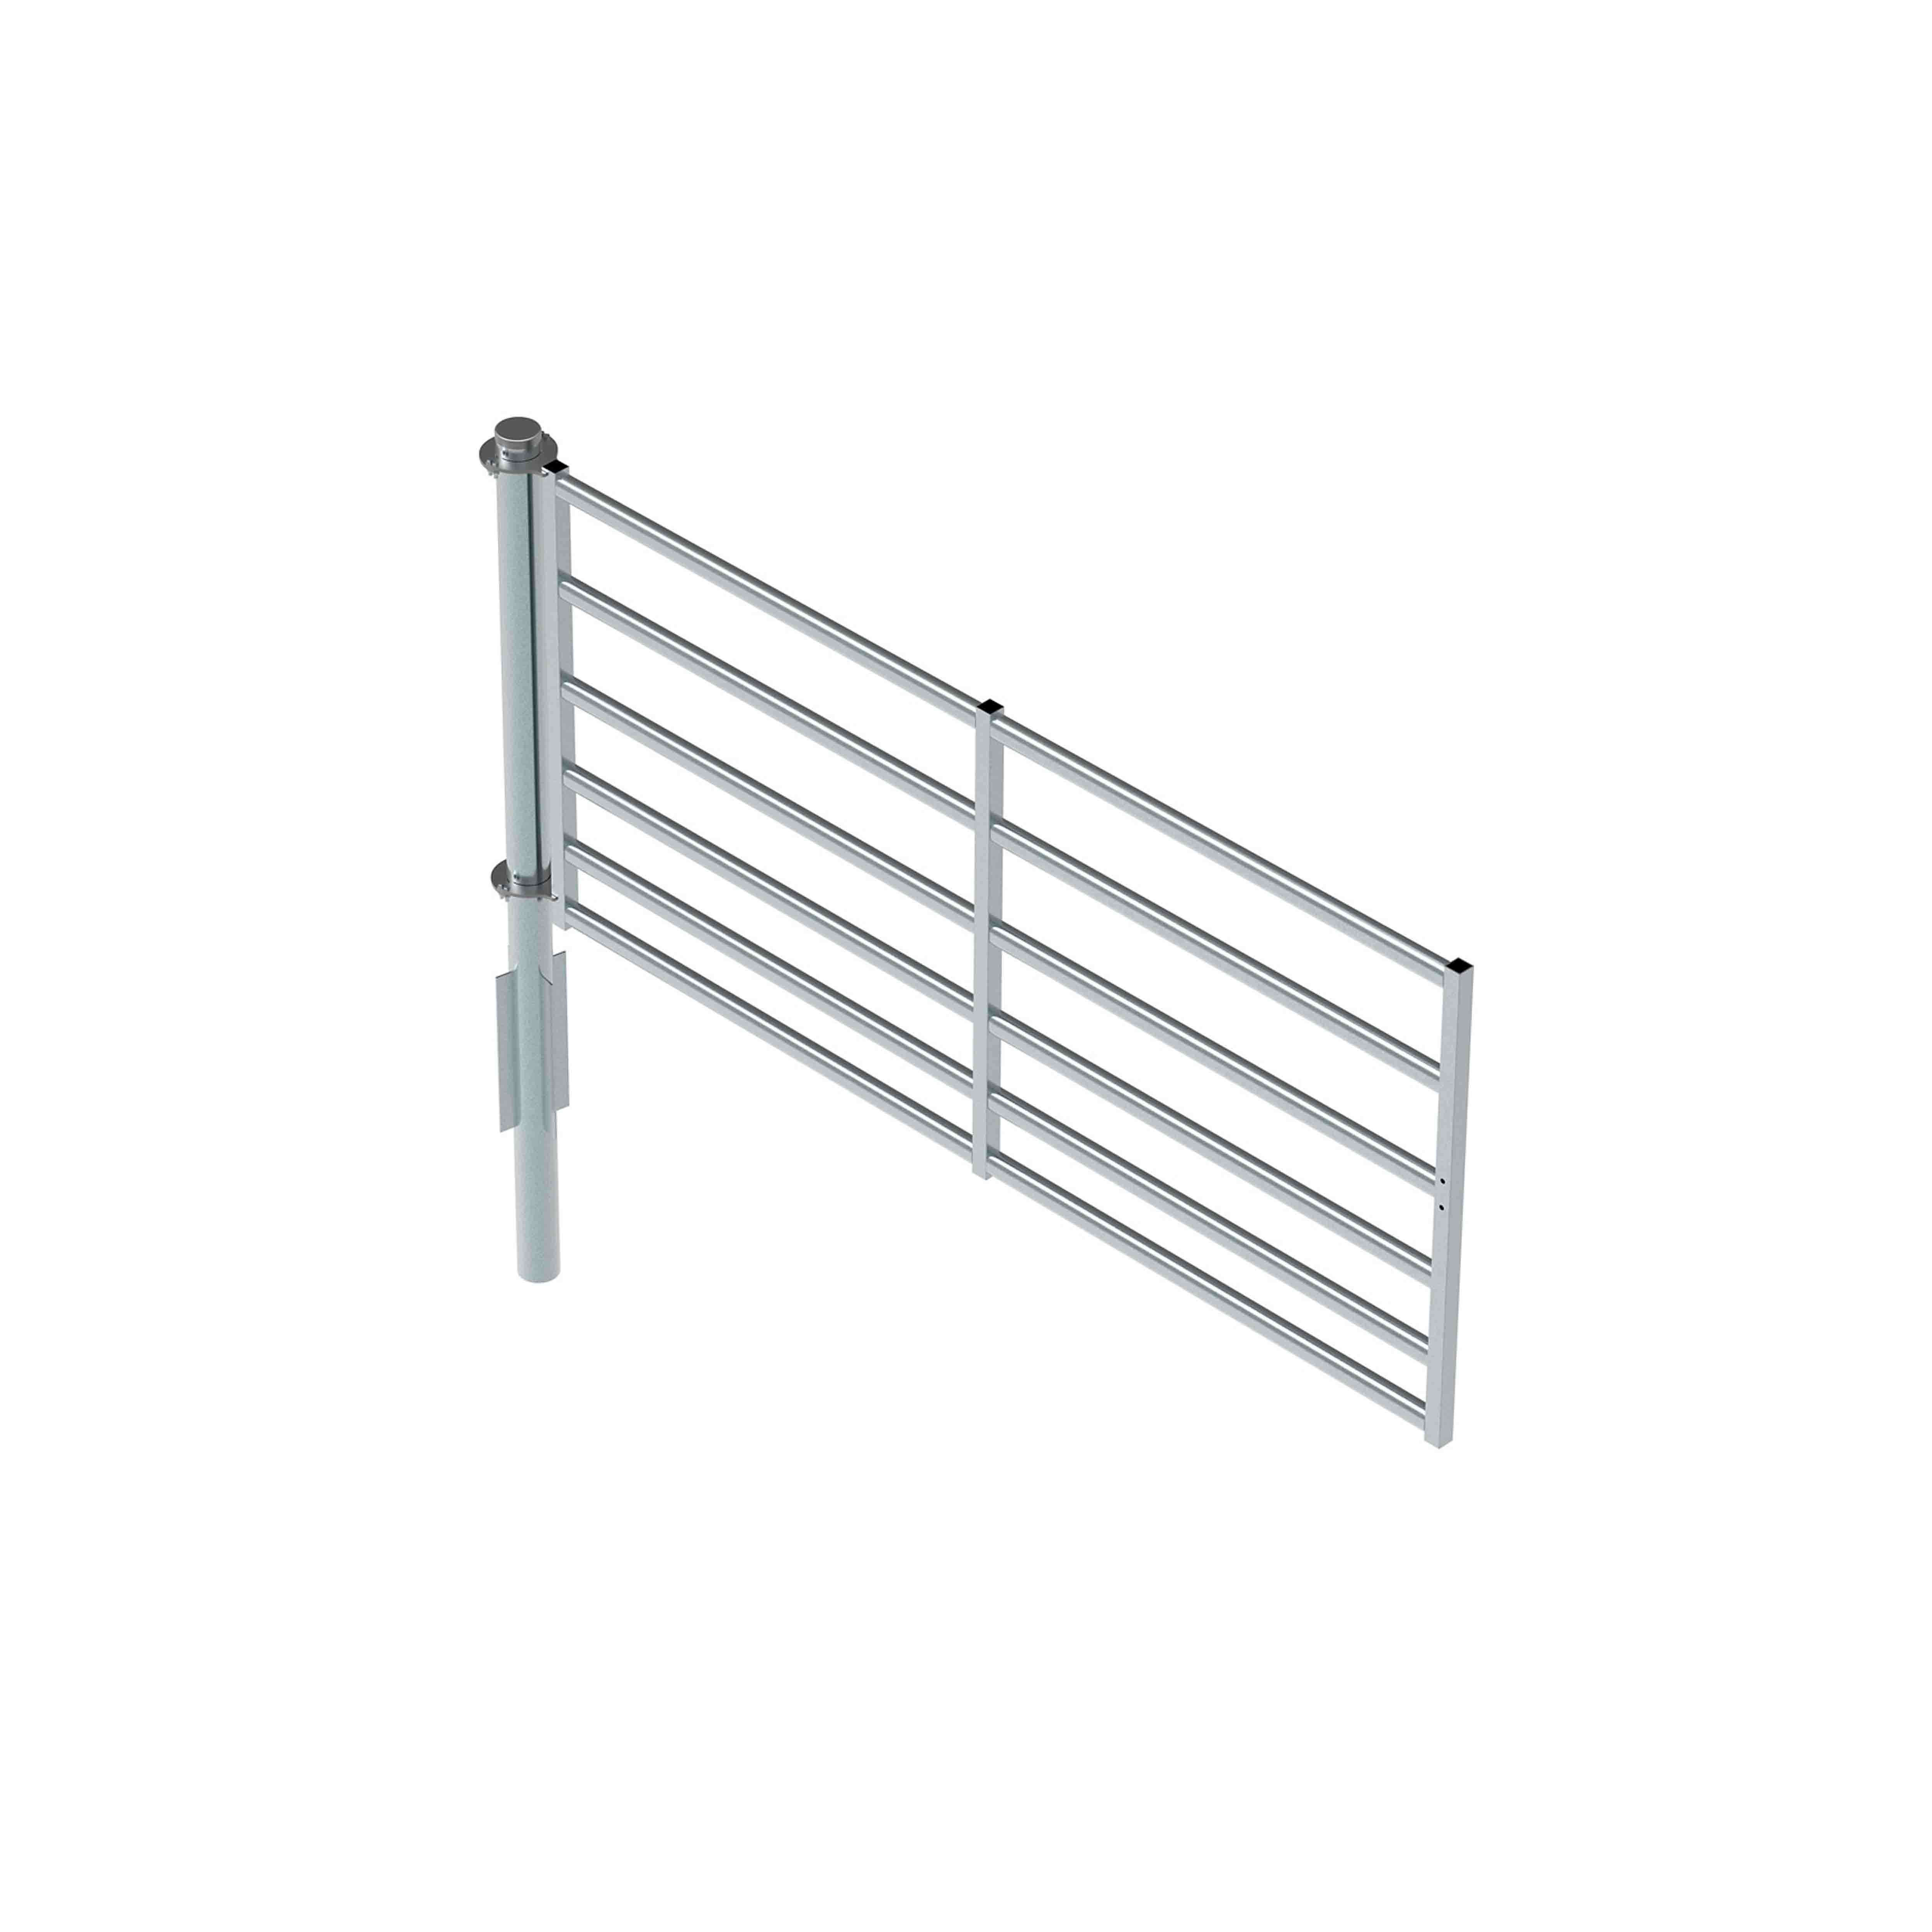 360° Pole with 3.1m x 1400H 6 rail Gate